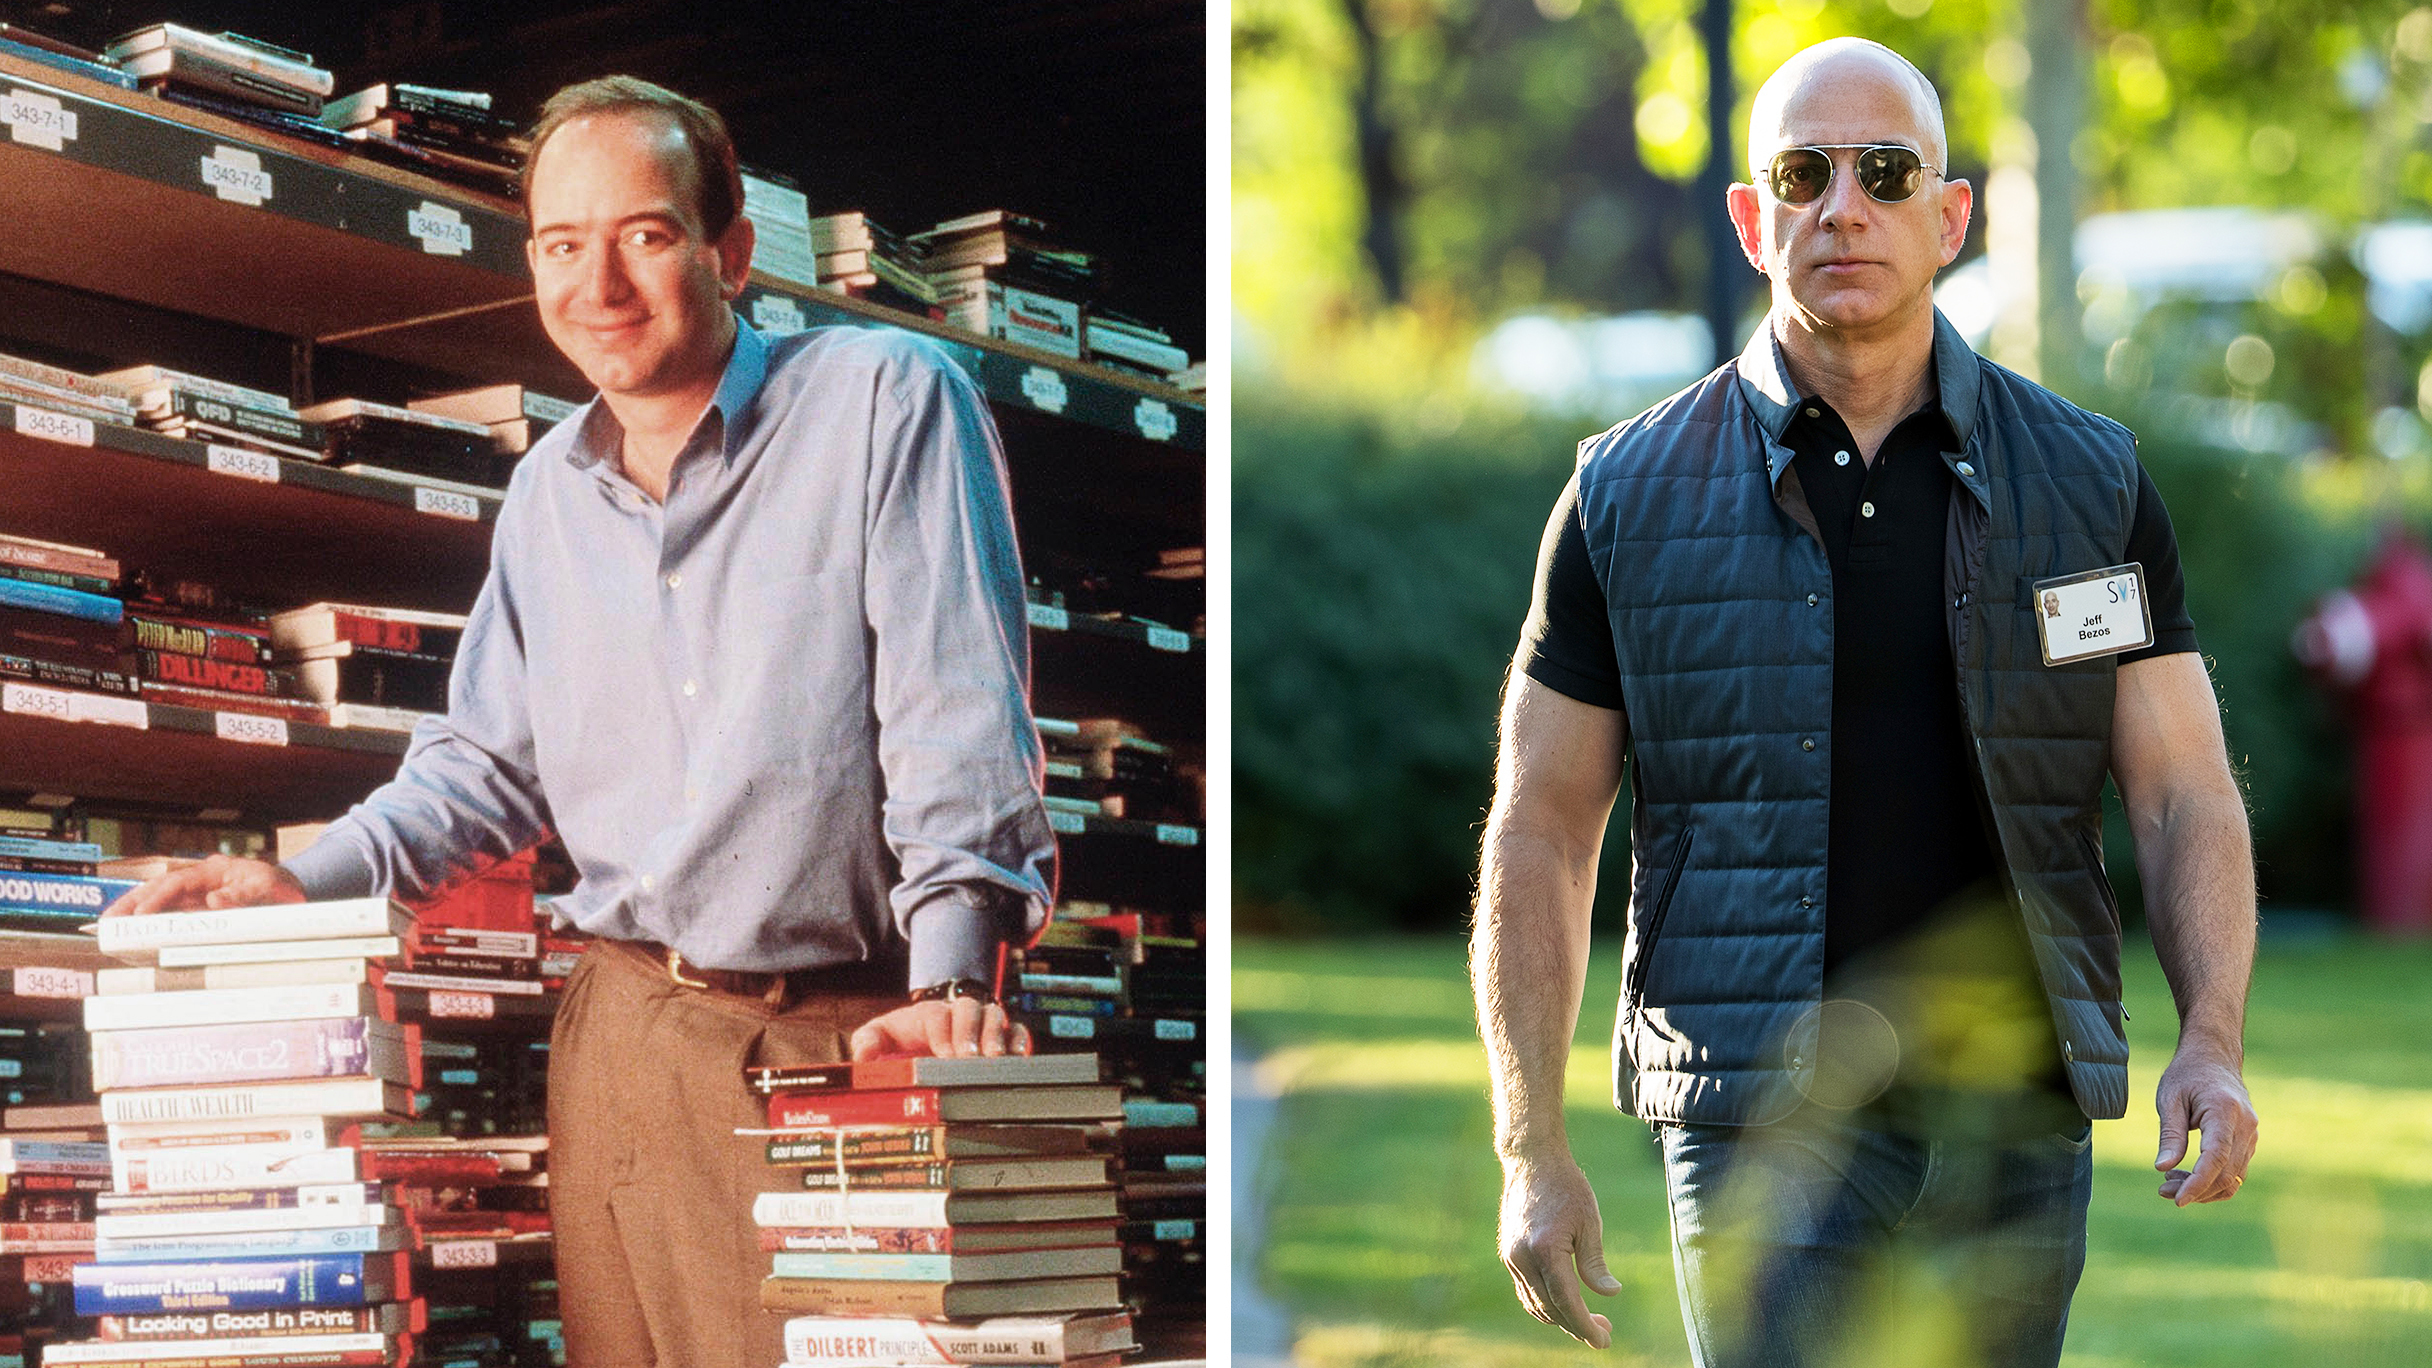 Bigger And Brawnier Clout Of Amazon And Ceo Jeff Bezos Under Scrutiny Kpbs